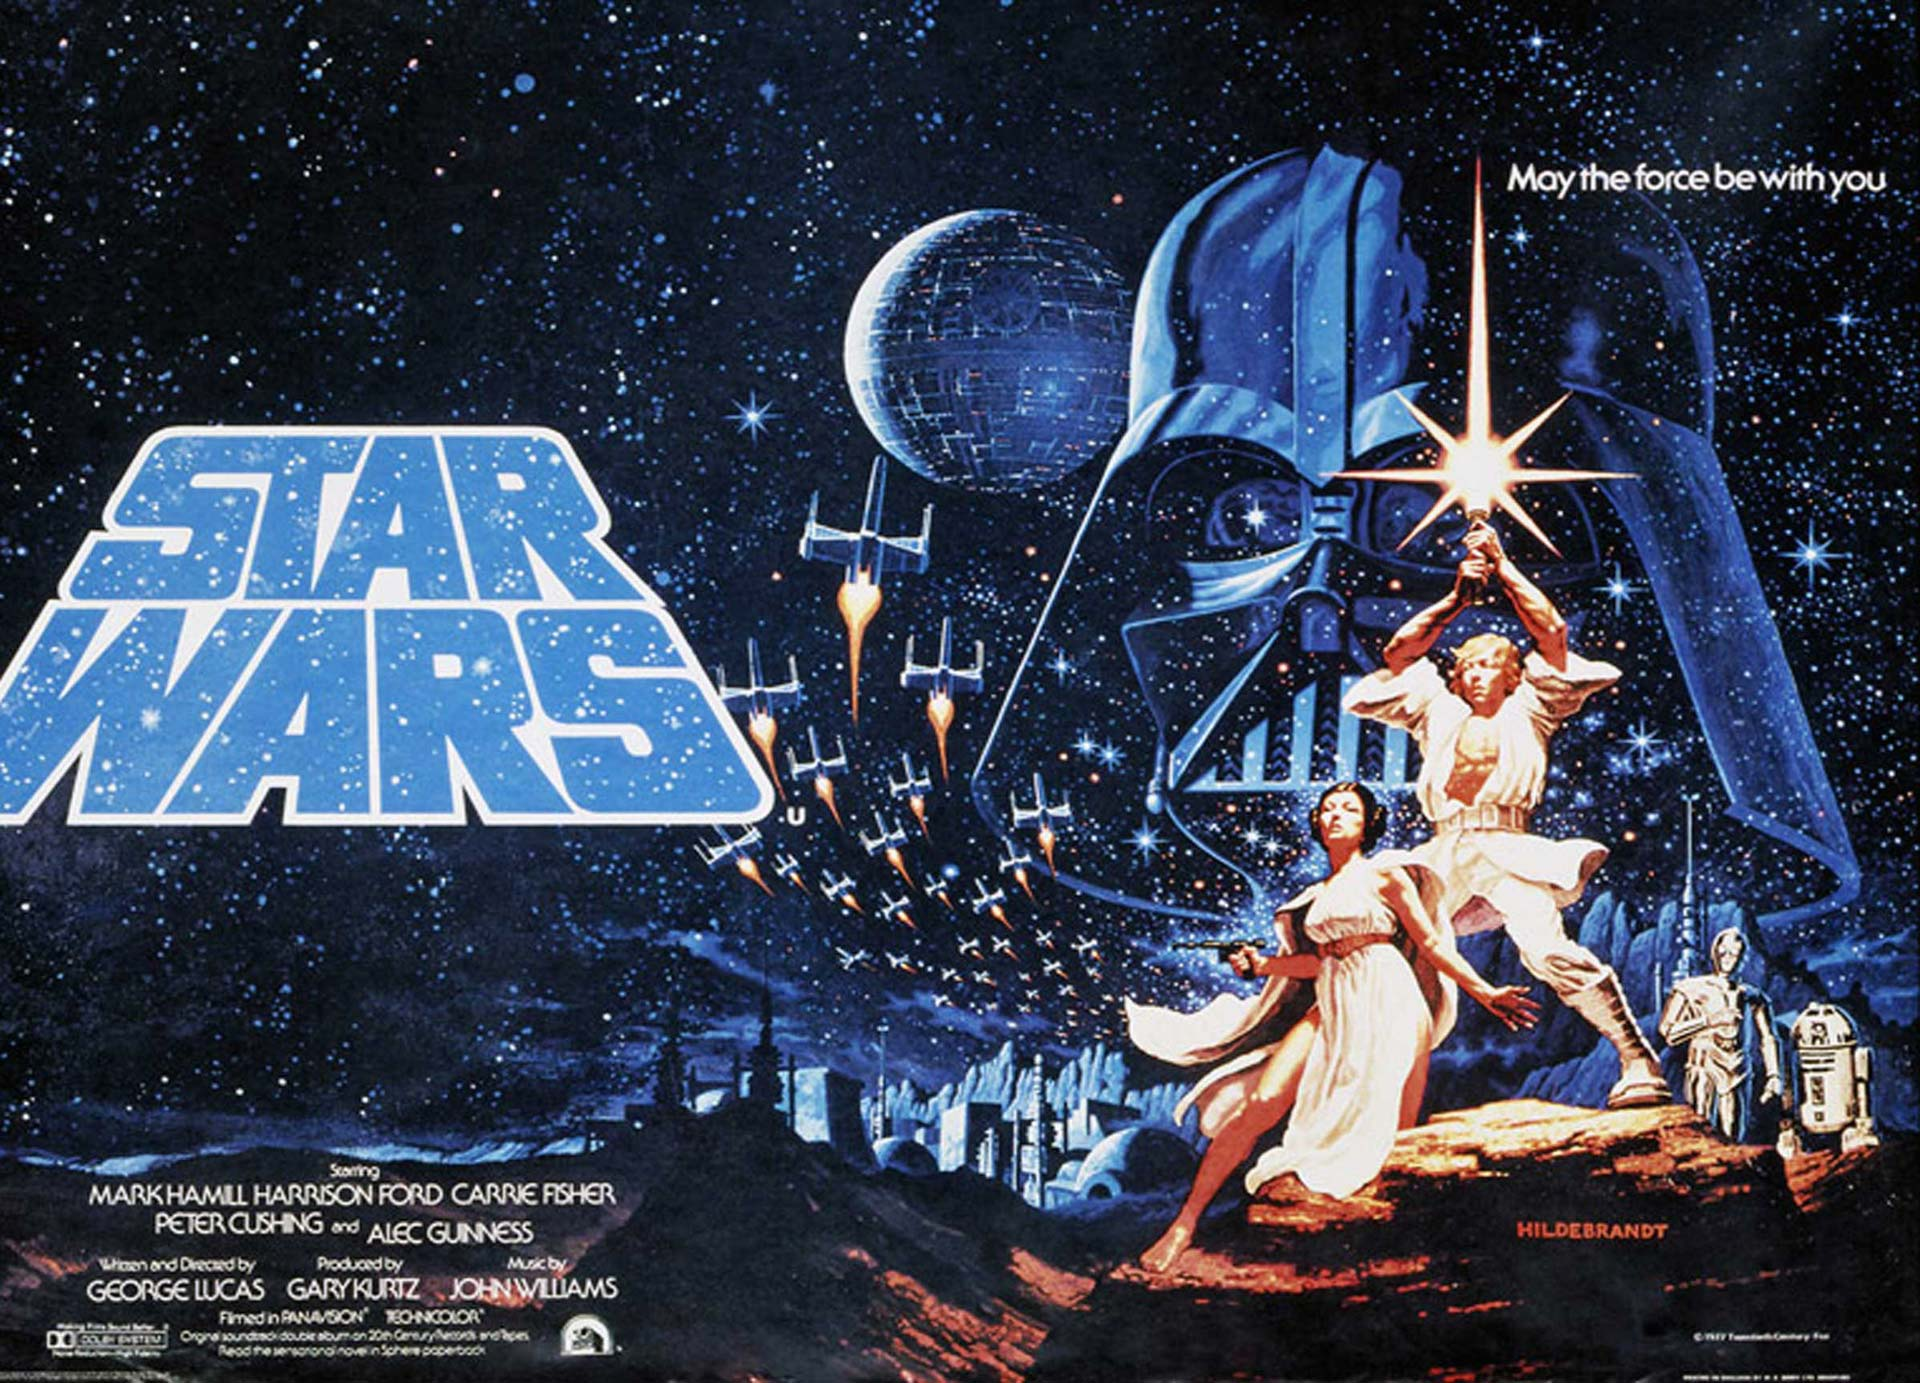 Horizontal Star Wars Classic Posters Episode IV: A New Hope Style A by the Brothers Hildebrandt